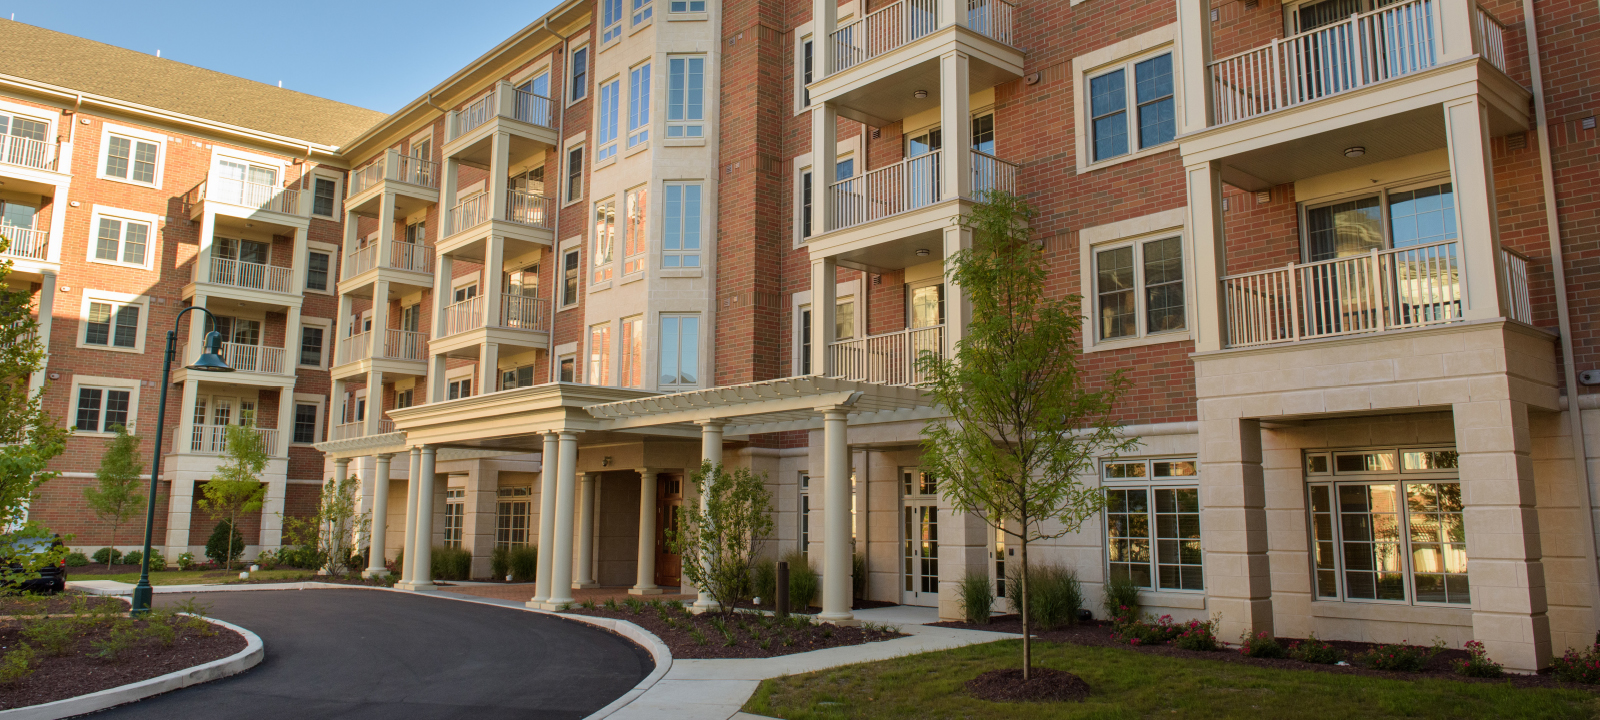 entrance at Meridian at Eagleview apartments in Exton PA